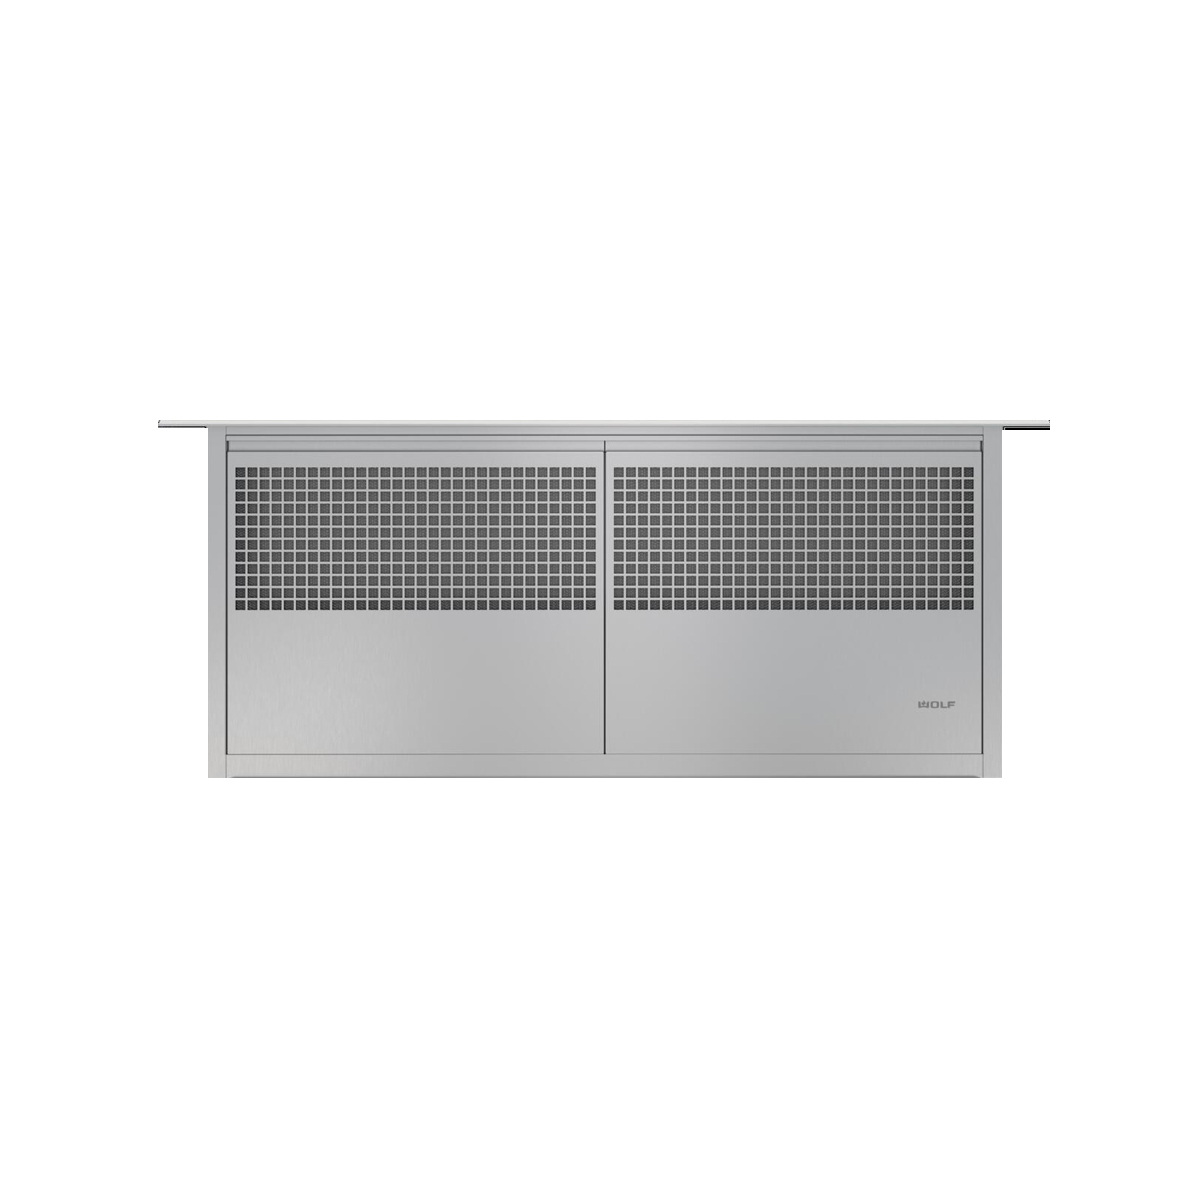 Wolf Downdraft Extractor System